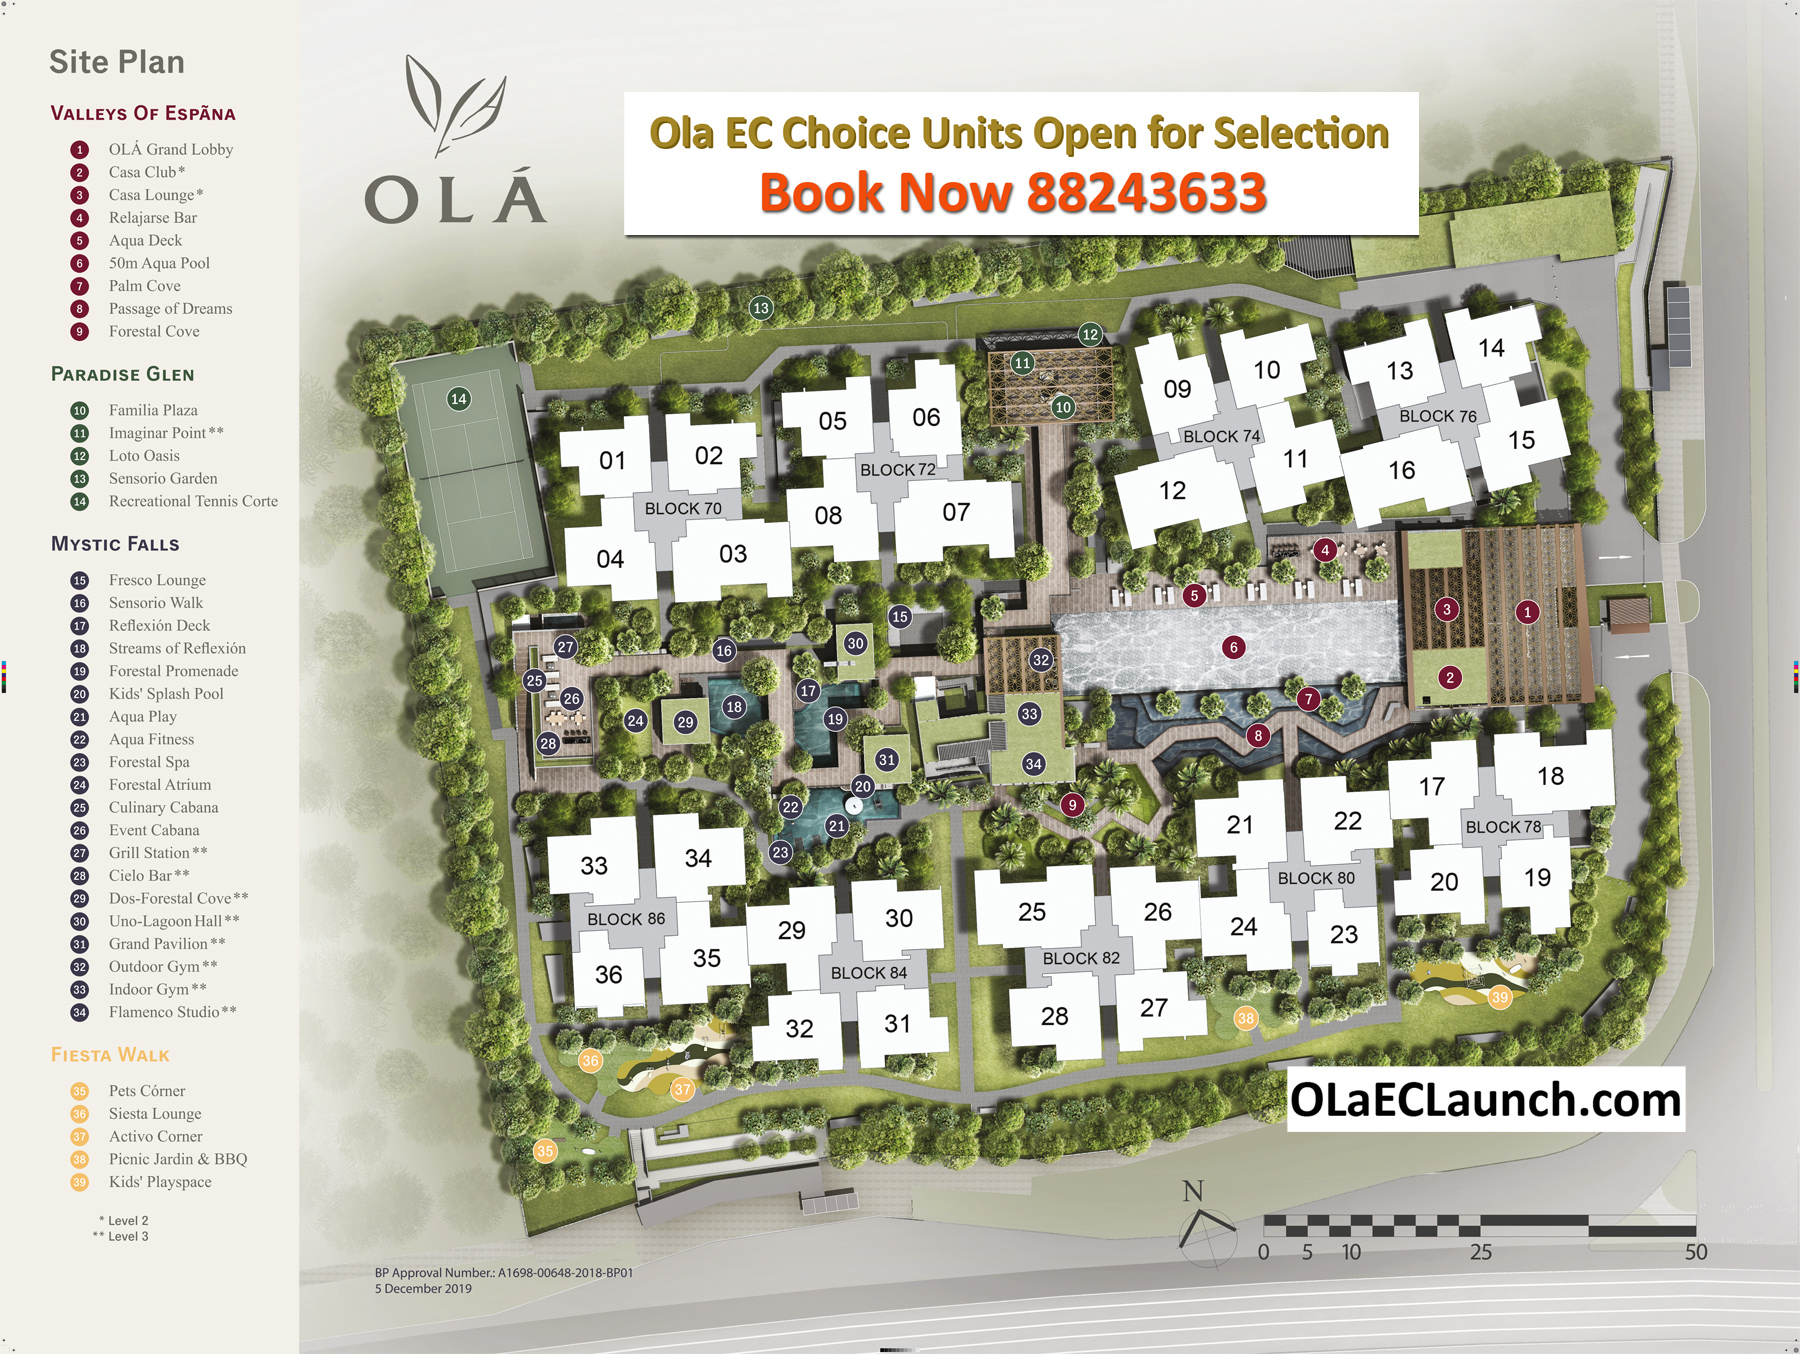 OMA EC Site Plan & Facilities